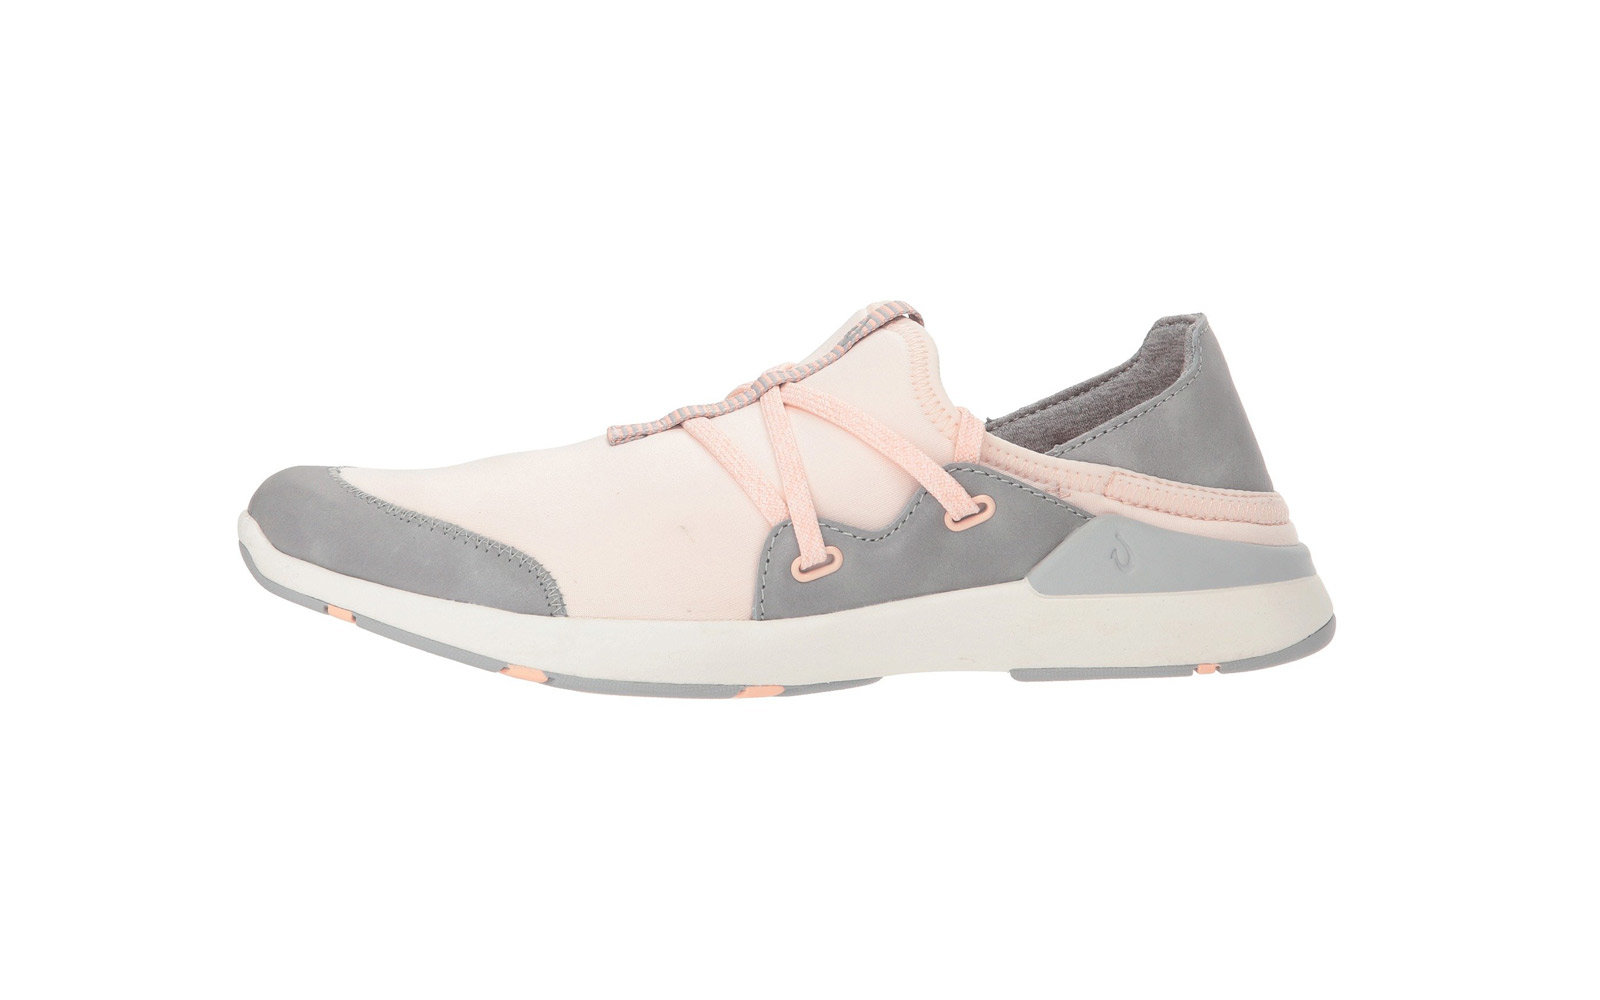 OluKai Women's Miki Li' Slip-on Sneaker